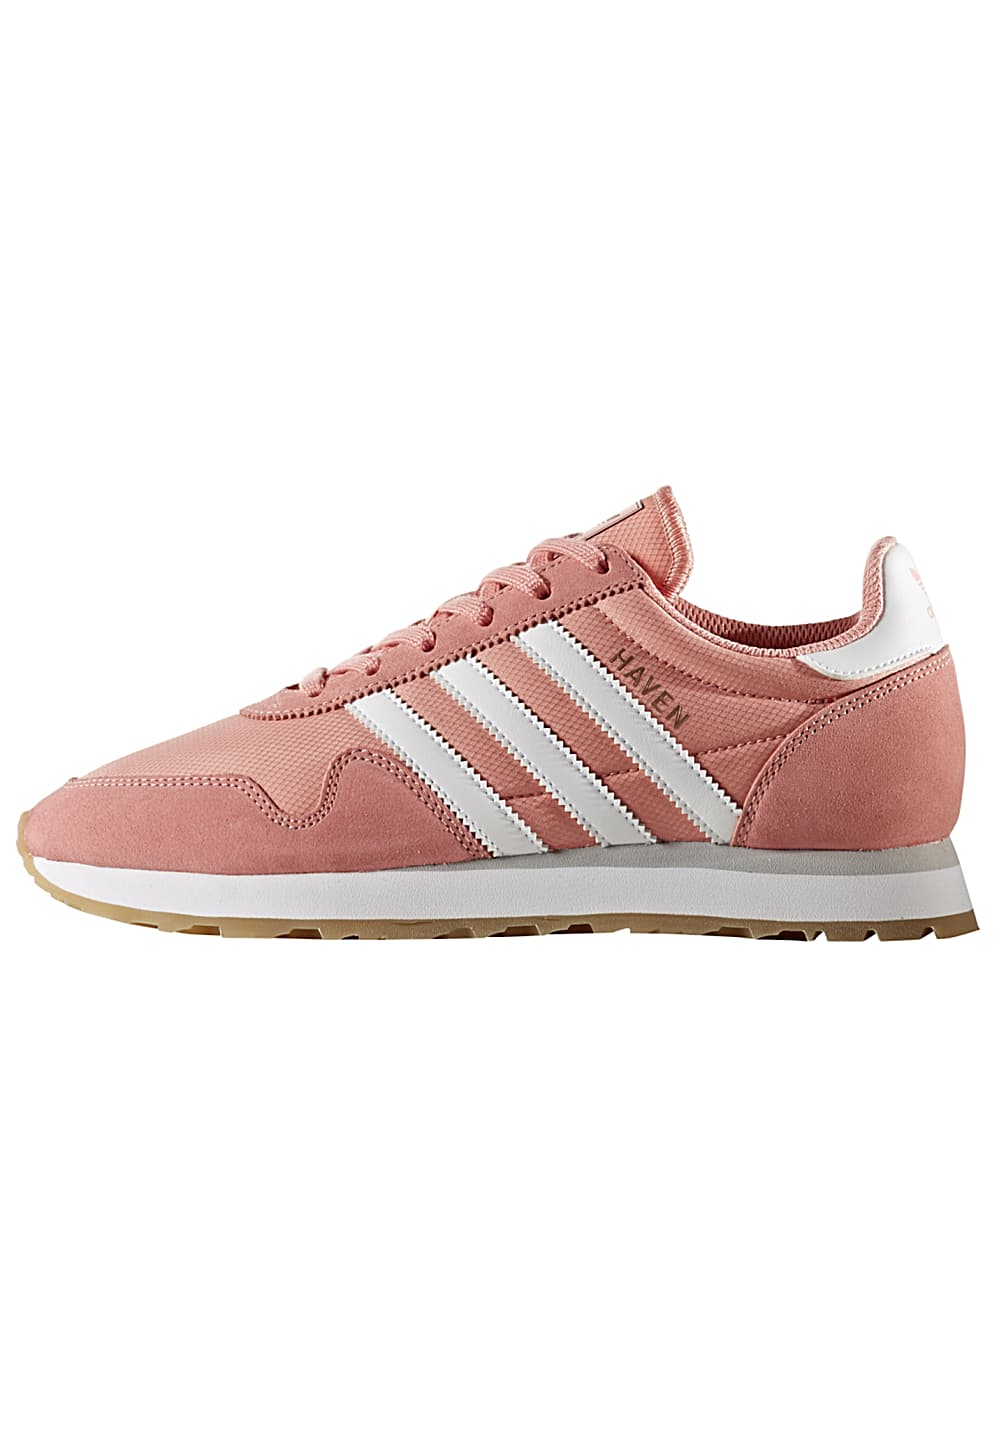 adidas Originals Haven - Sneaker für Damen - Pink